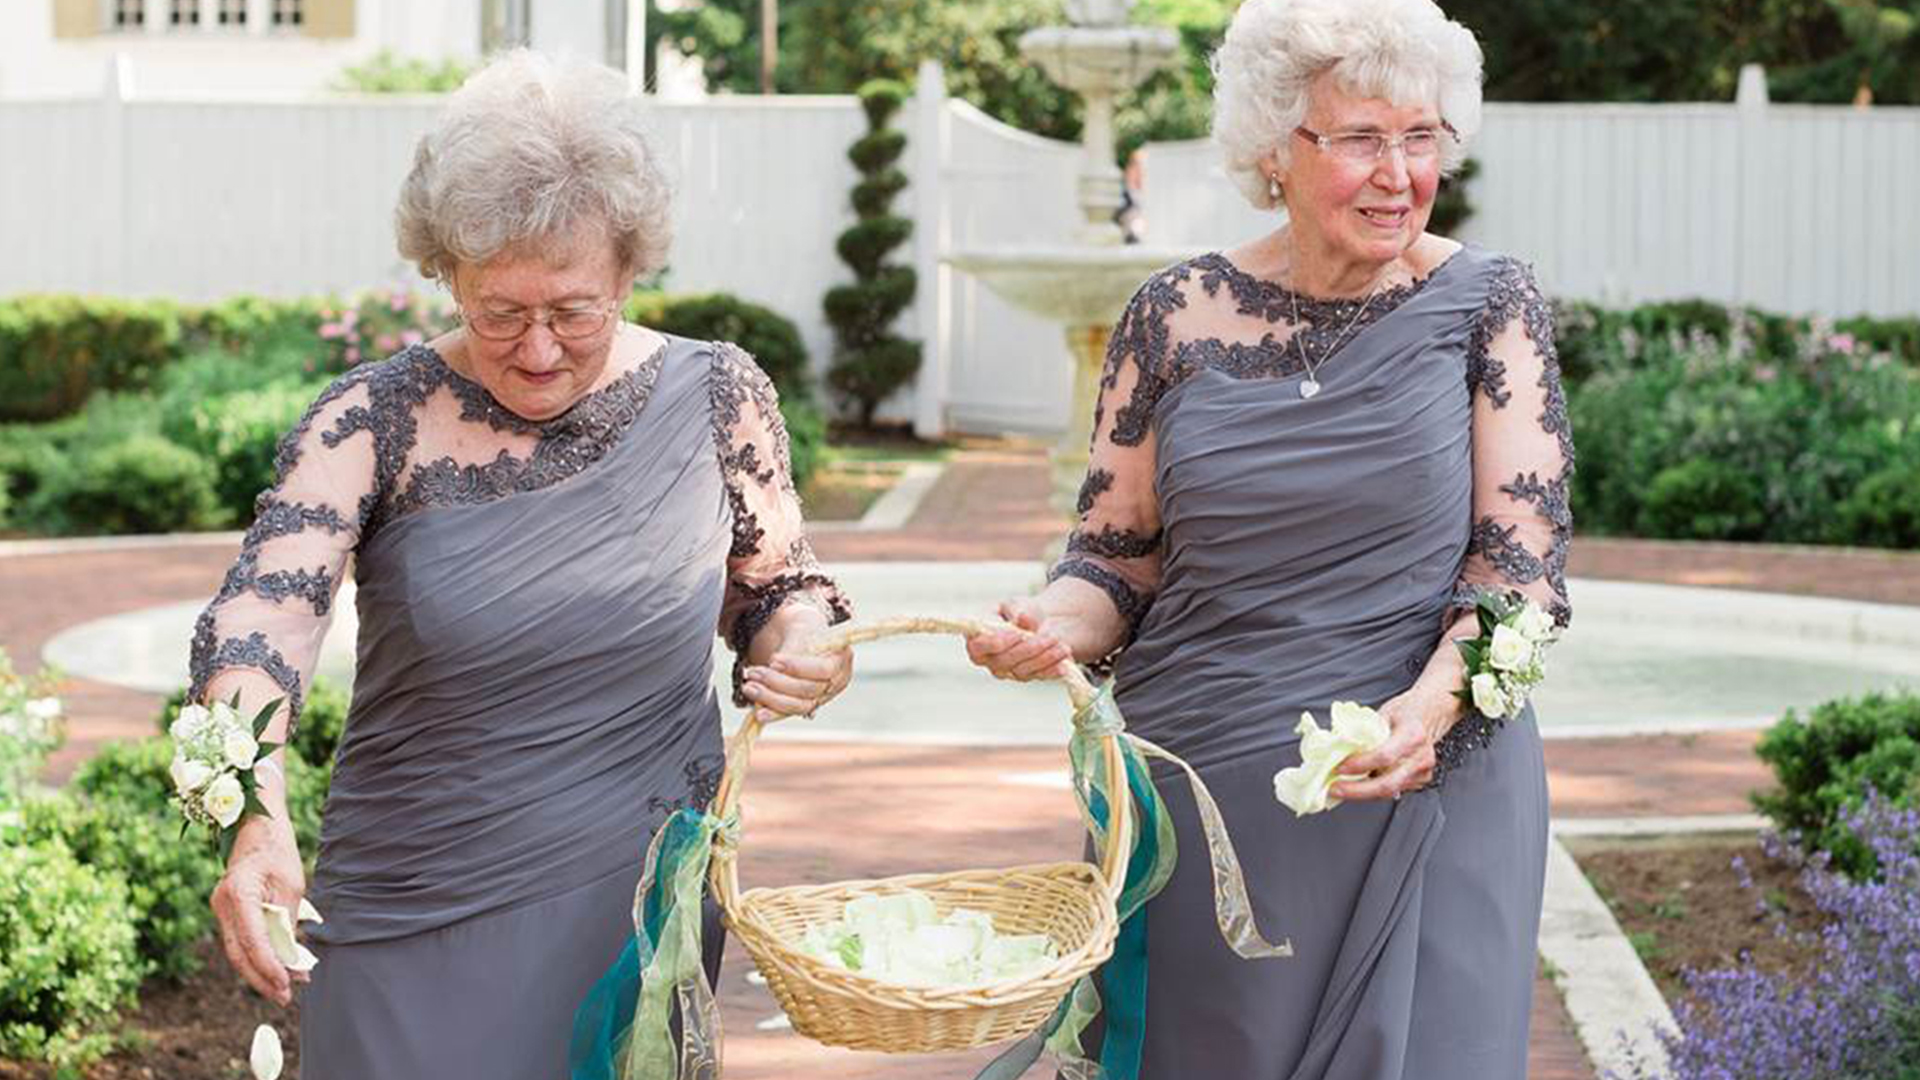 grandmas-flower-girls-today-160713-tease_fd975ce857bccf5b5a51fddf7588ebc4.jpg